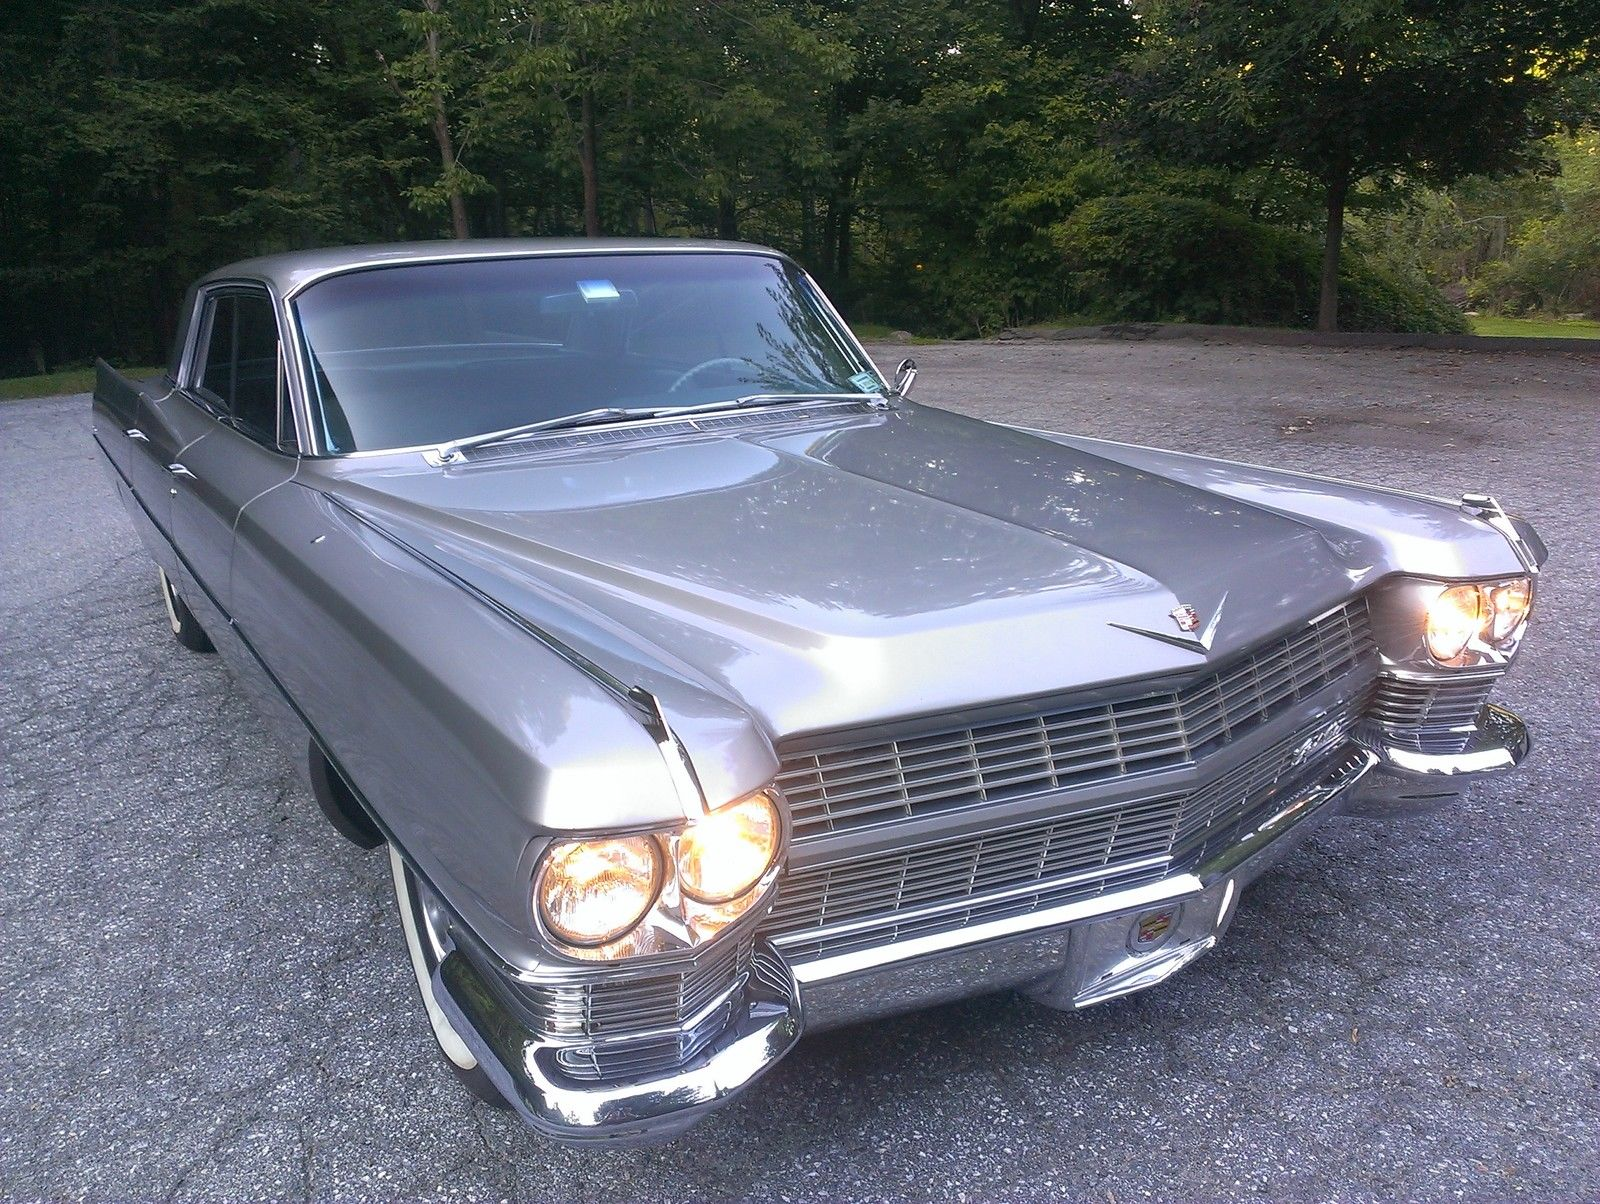 Barrett Jackson Quality 64 Caddy Deville 45k Loaded Not 1960 1961 Cadillac Sedan 1964 Hardtop Convertible Series 62